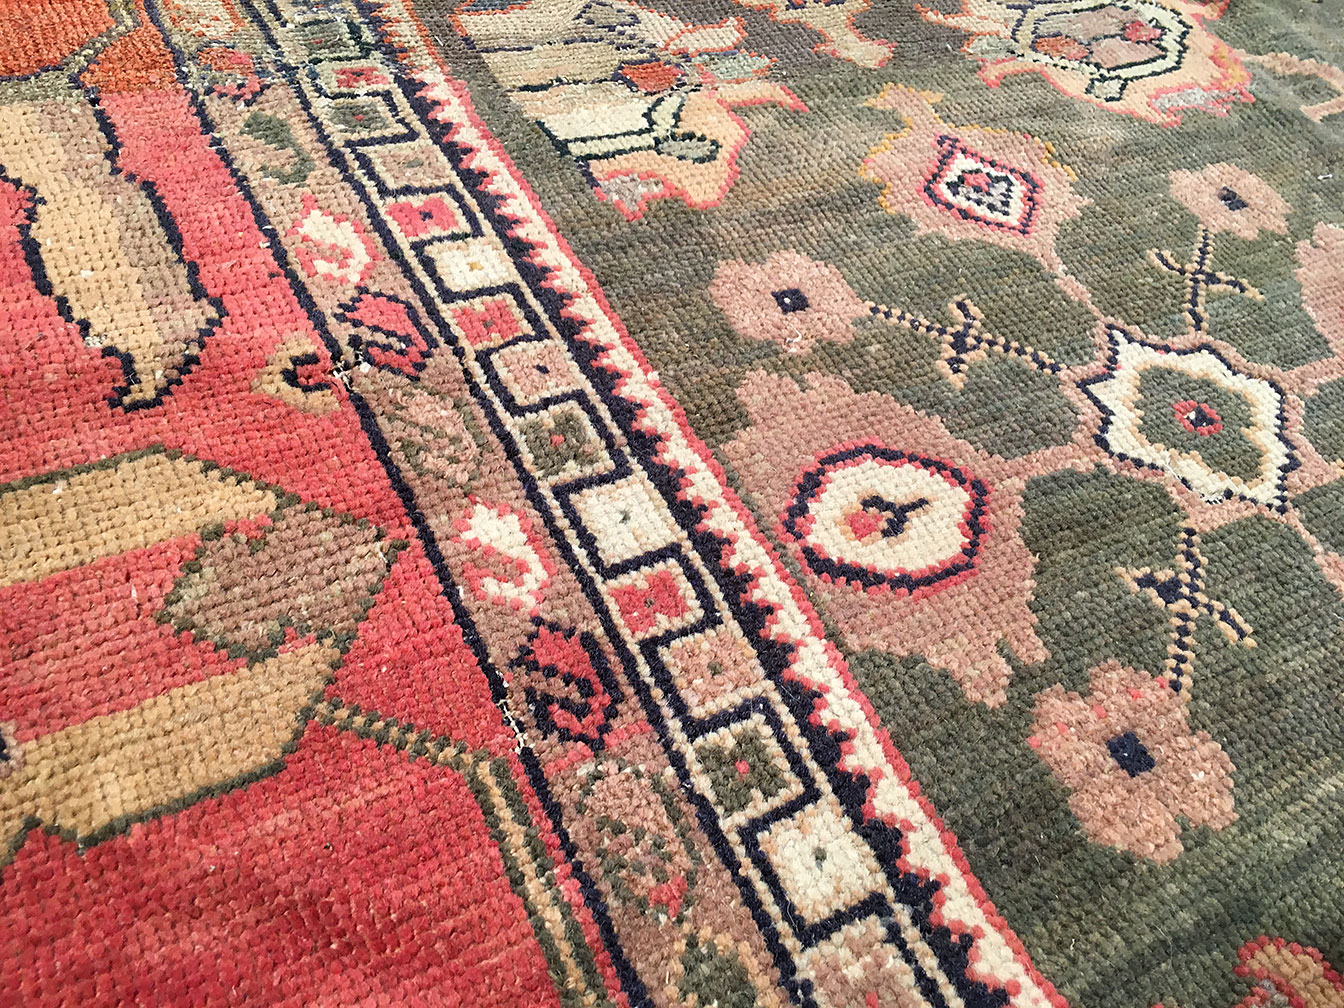 Antique sultan abad Carpet - # 93663